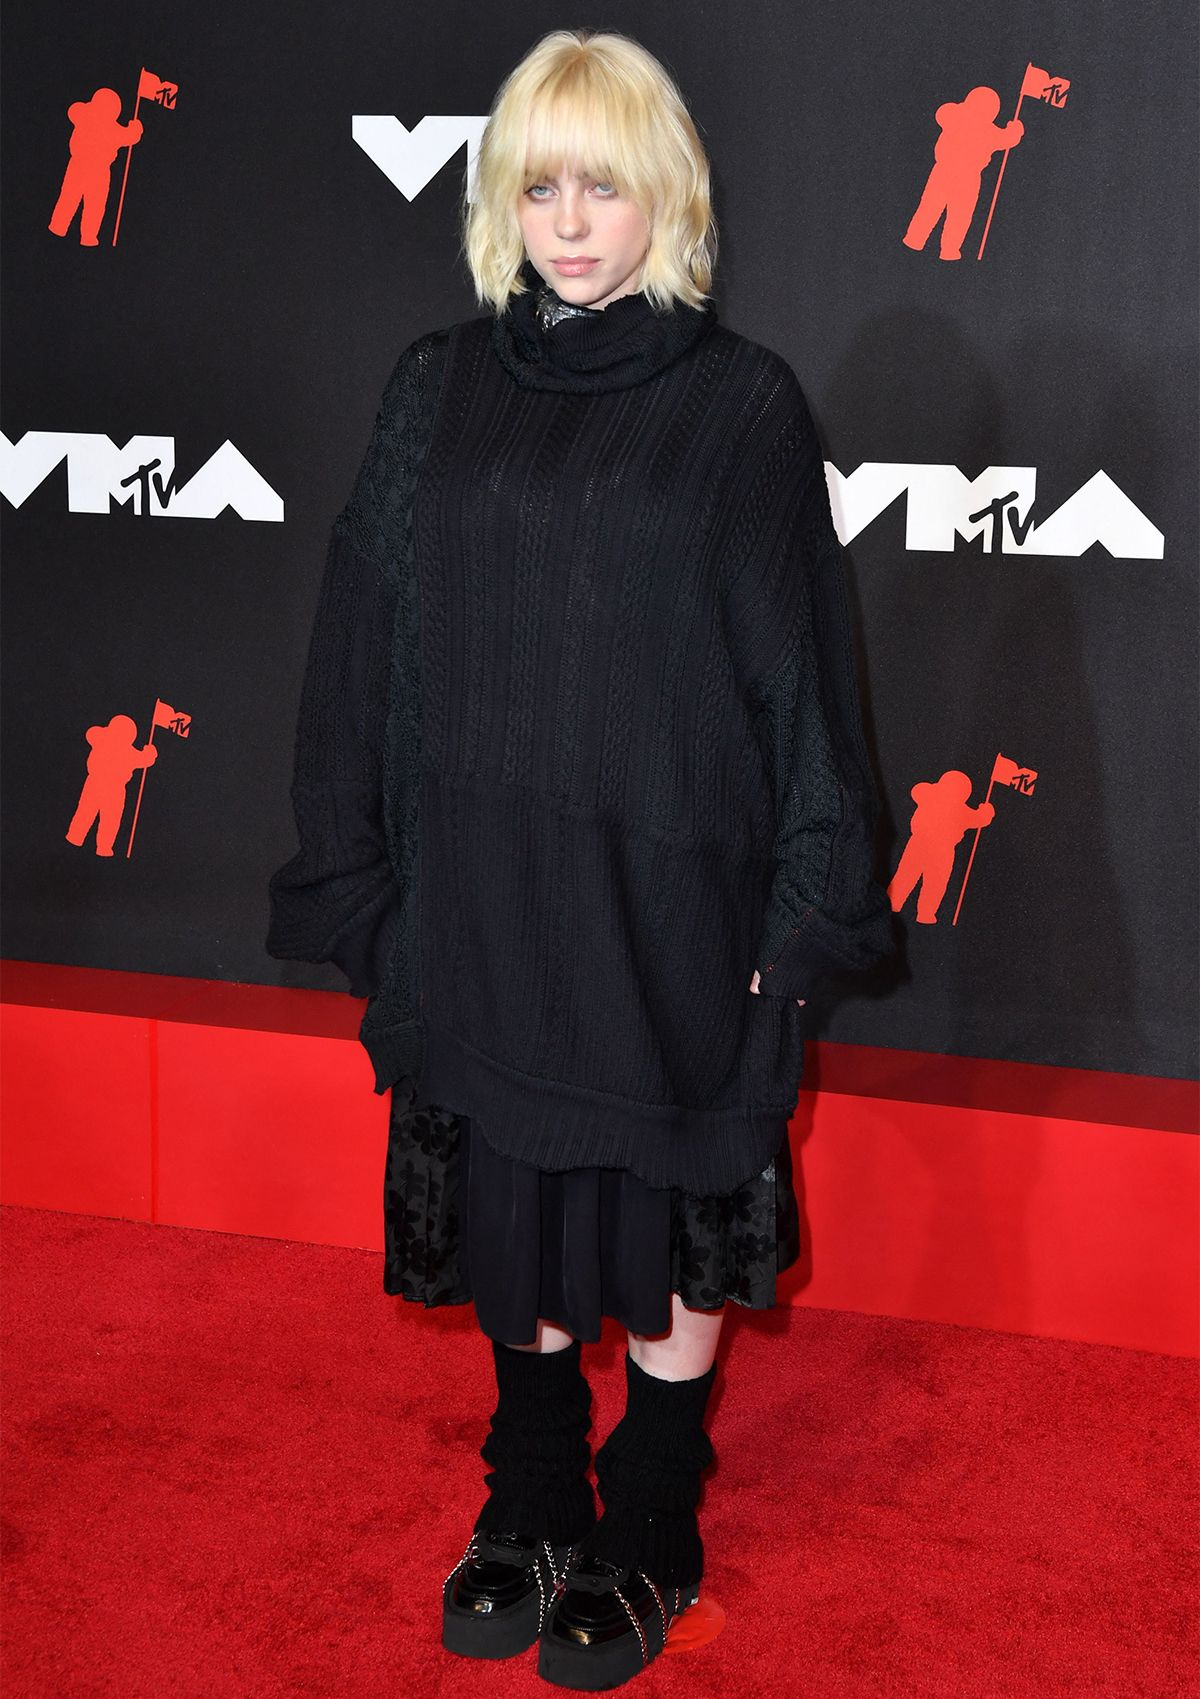 The MTV VMAs Red Carpet Looks That Shocked and Amazed Us - mtv vma red carpet 2021 295172 1631491445287